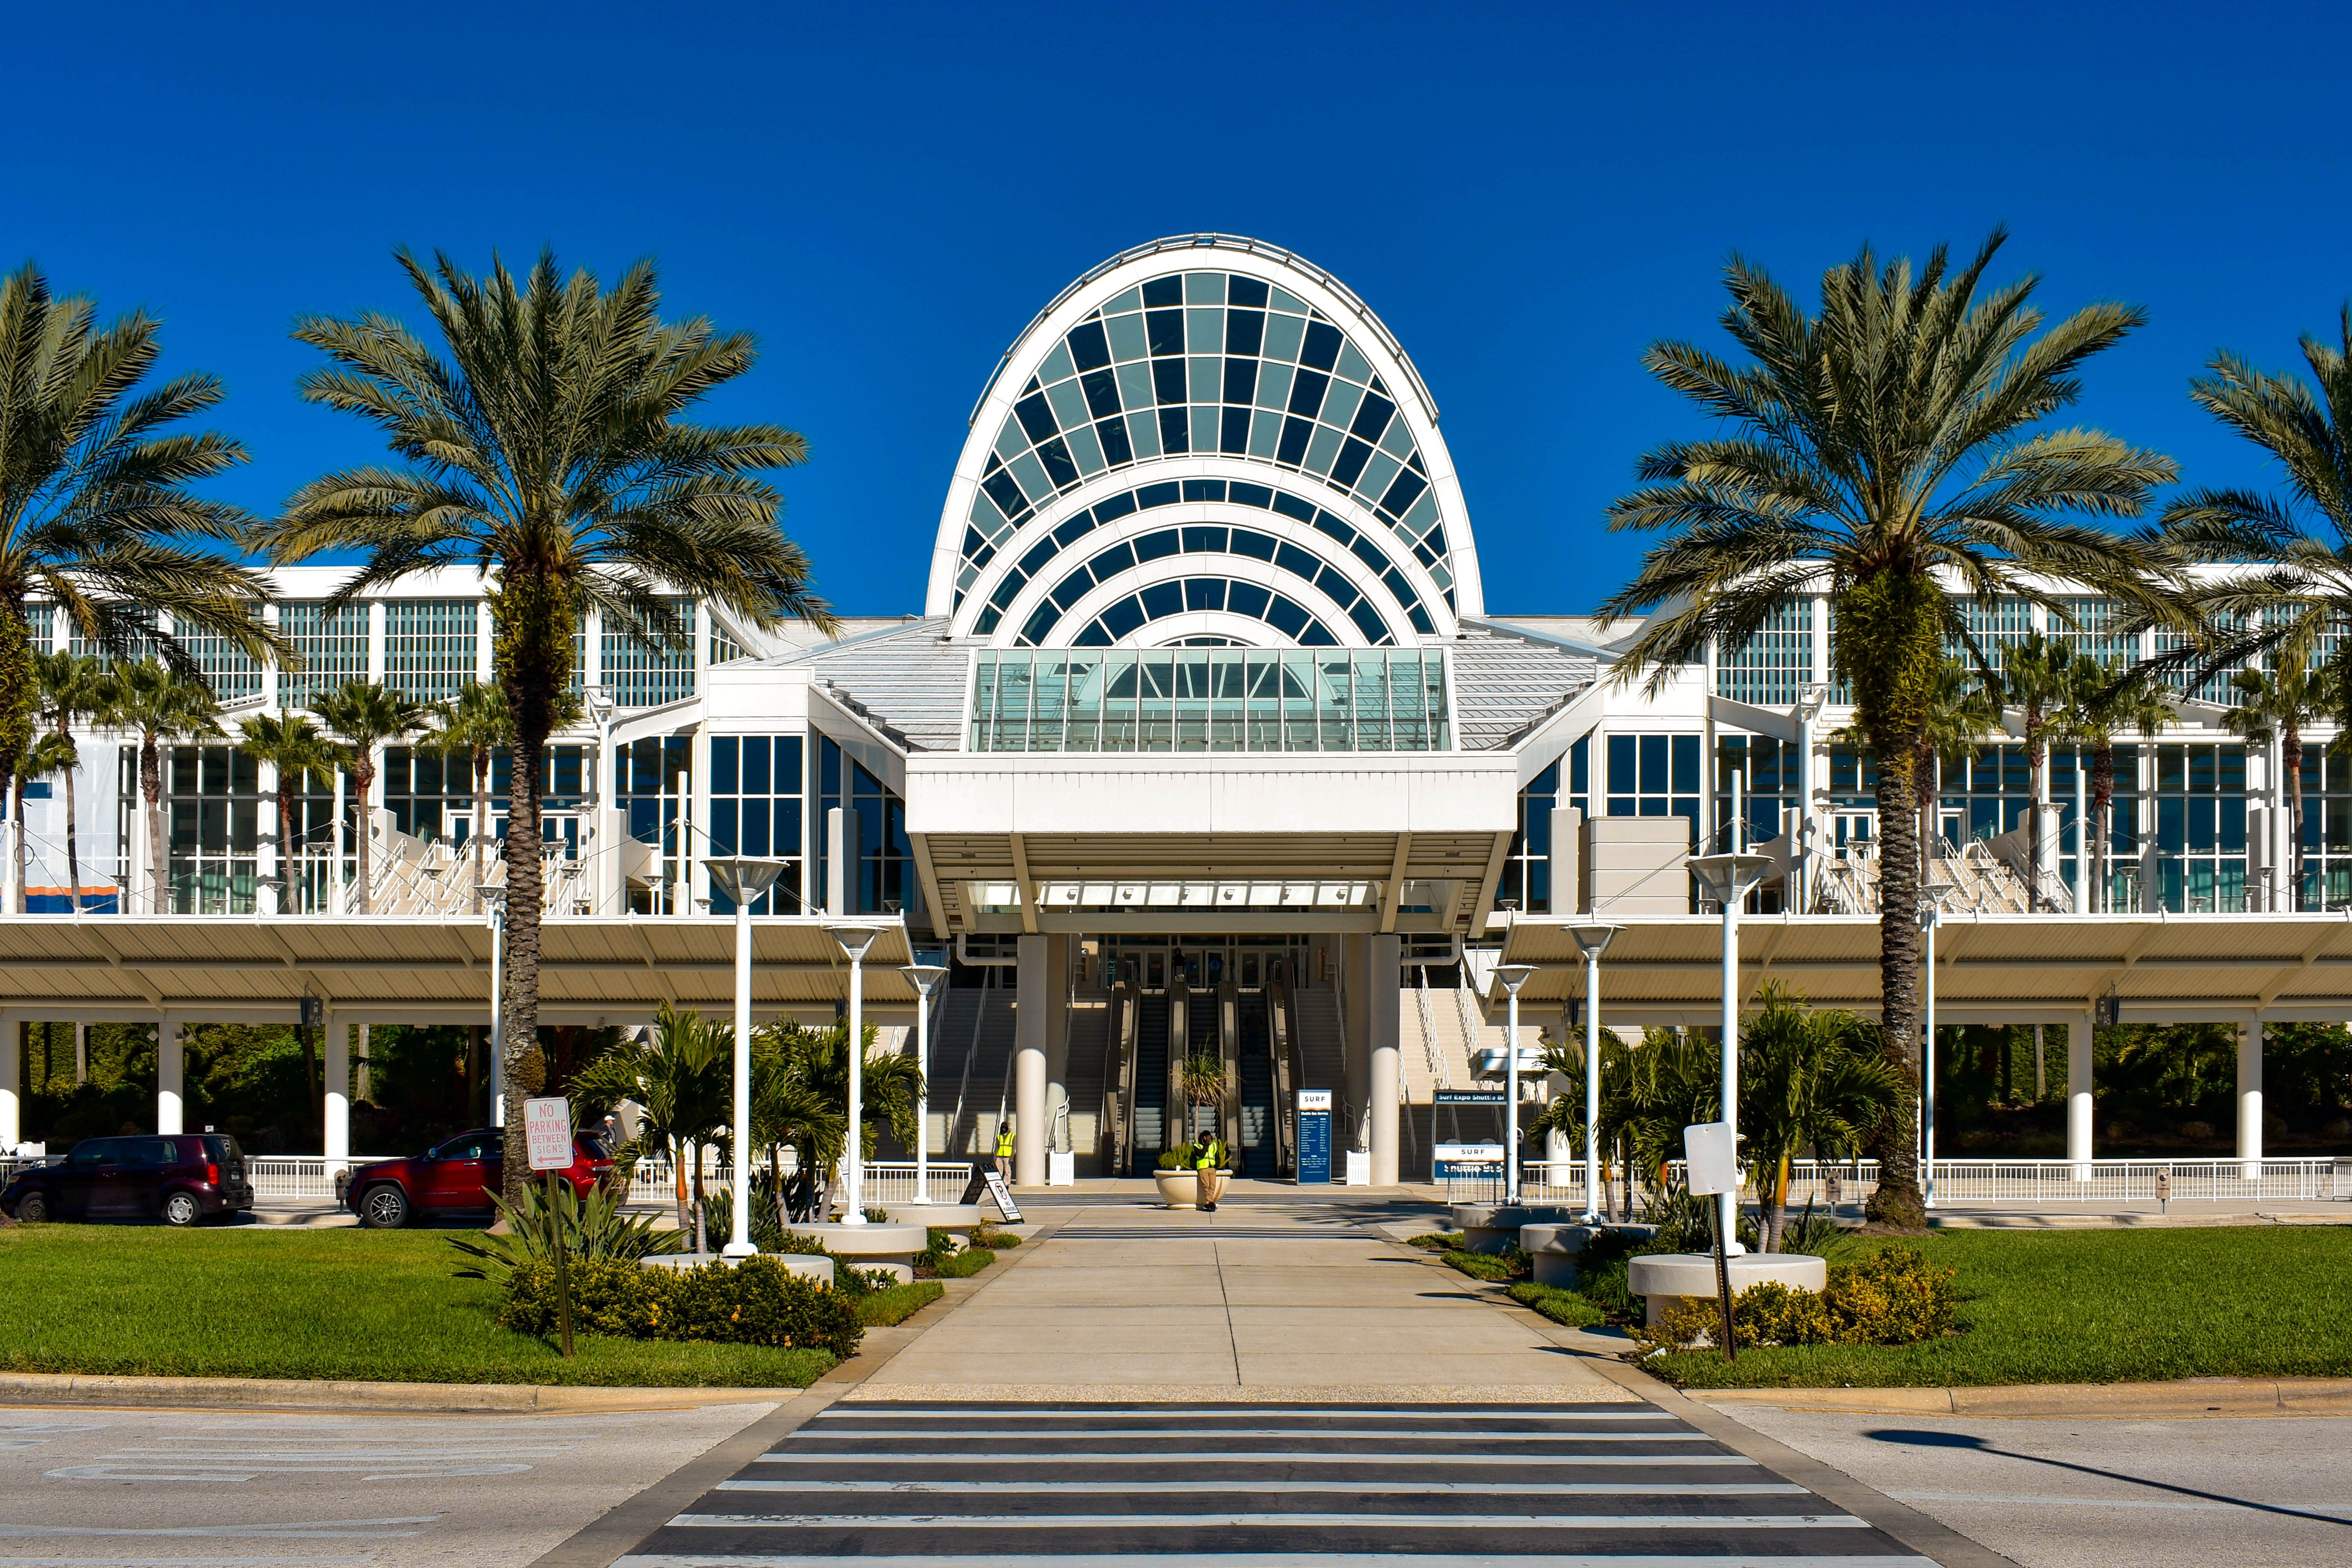 The arches of the main entrance of the Orlando Convention Center beneath a clear blue sky and flanked by palm trees at International Drive area